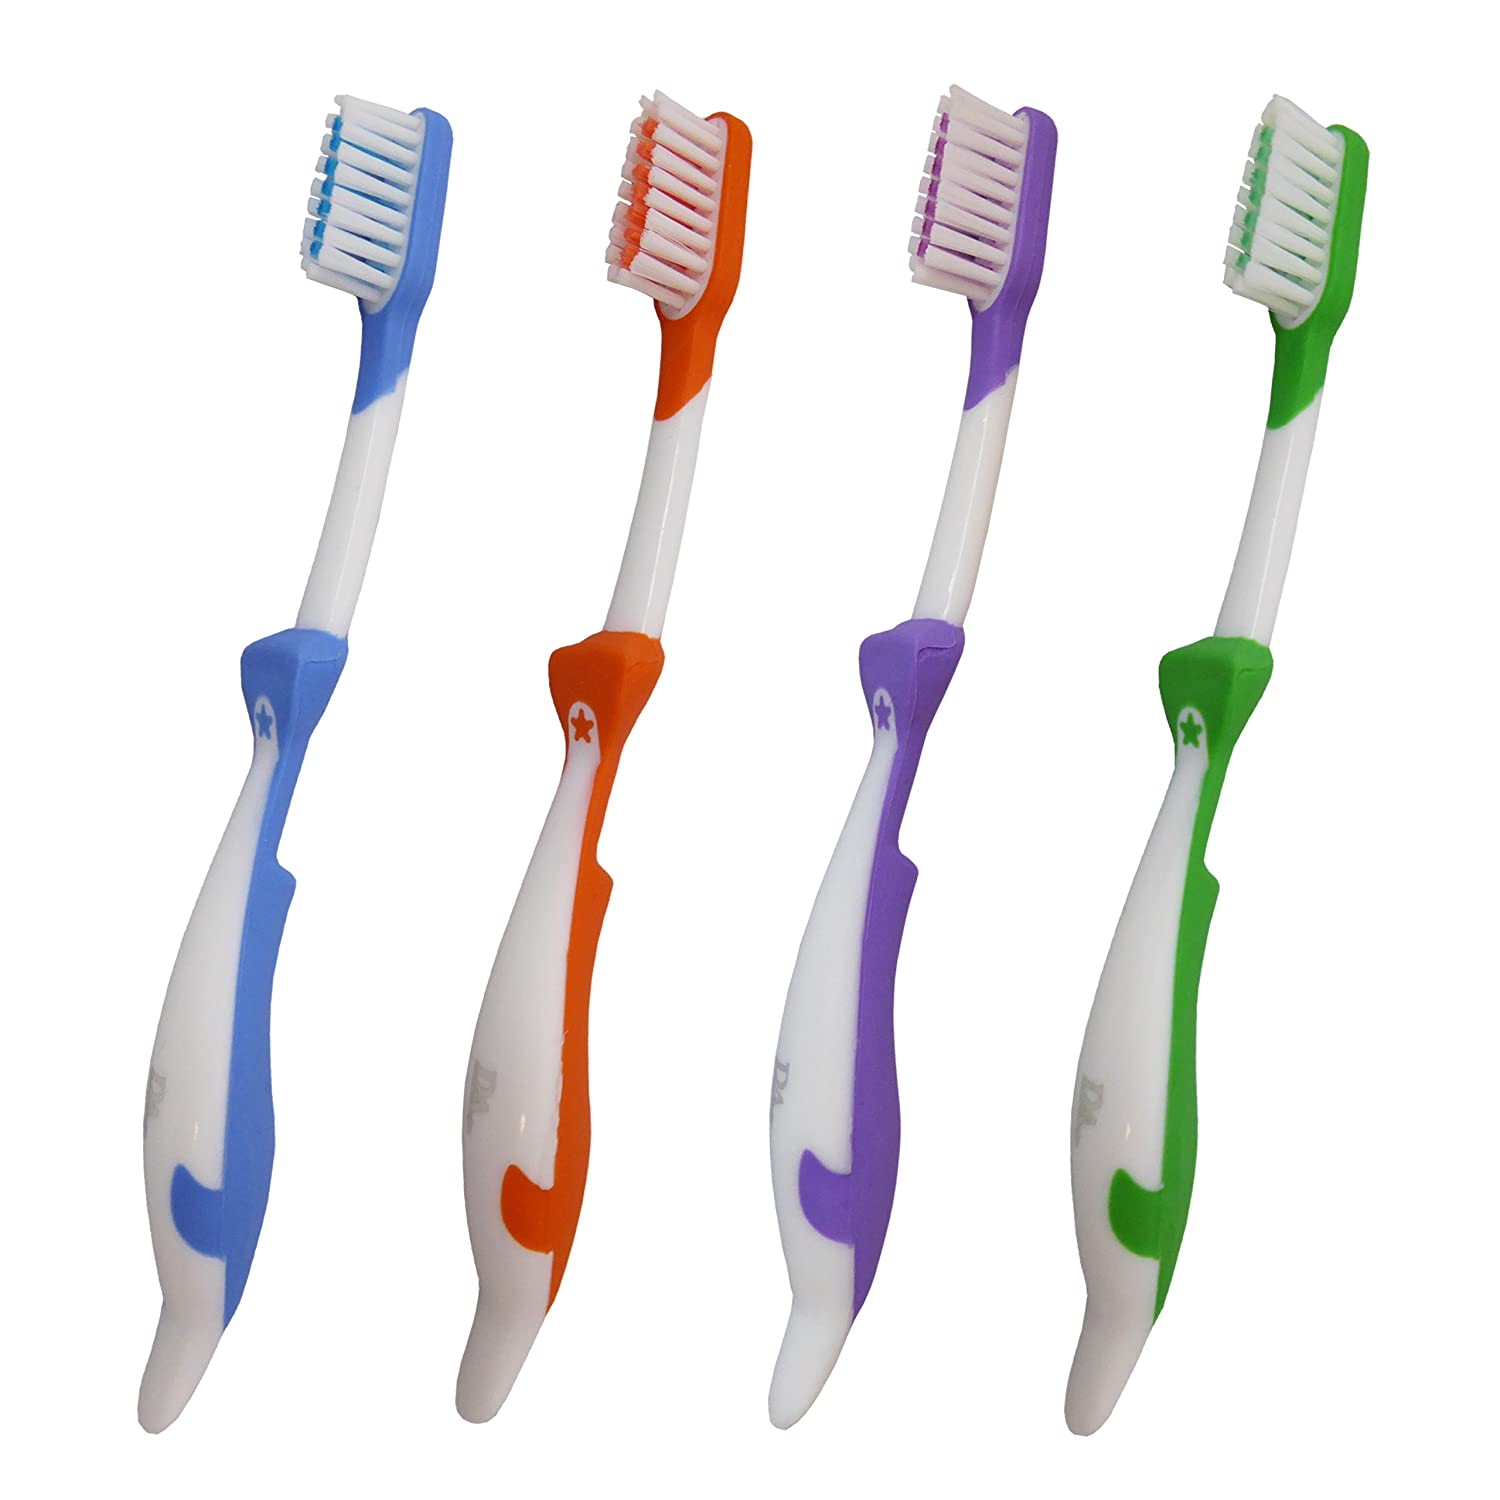 Childrens Toothbrushes Set Of 4 Orca Brushes For Brushing Kids Teeth